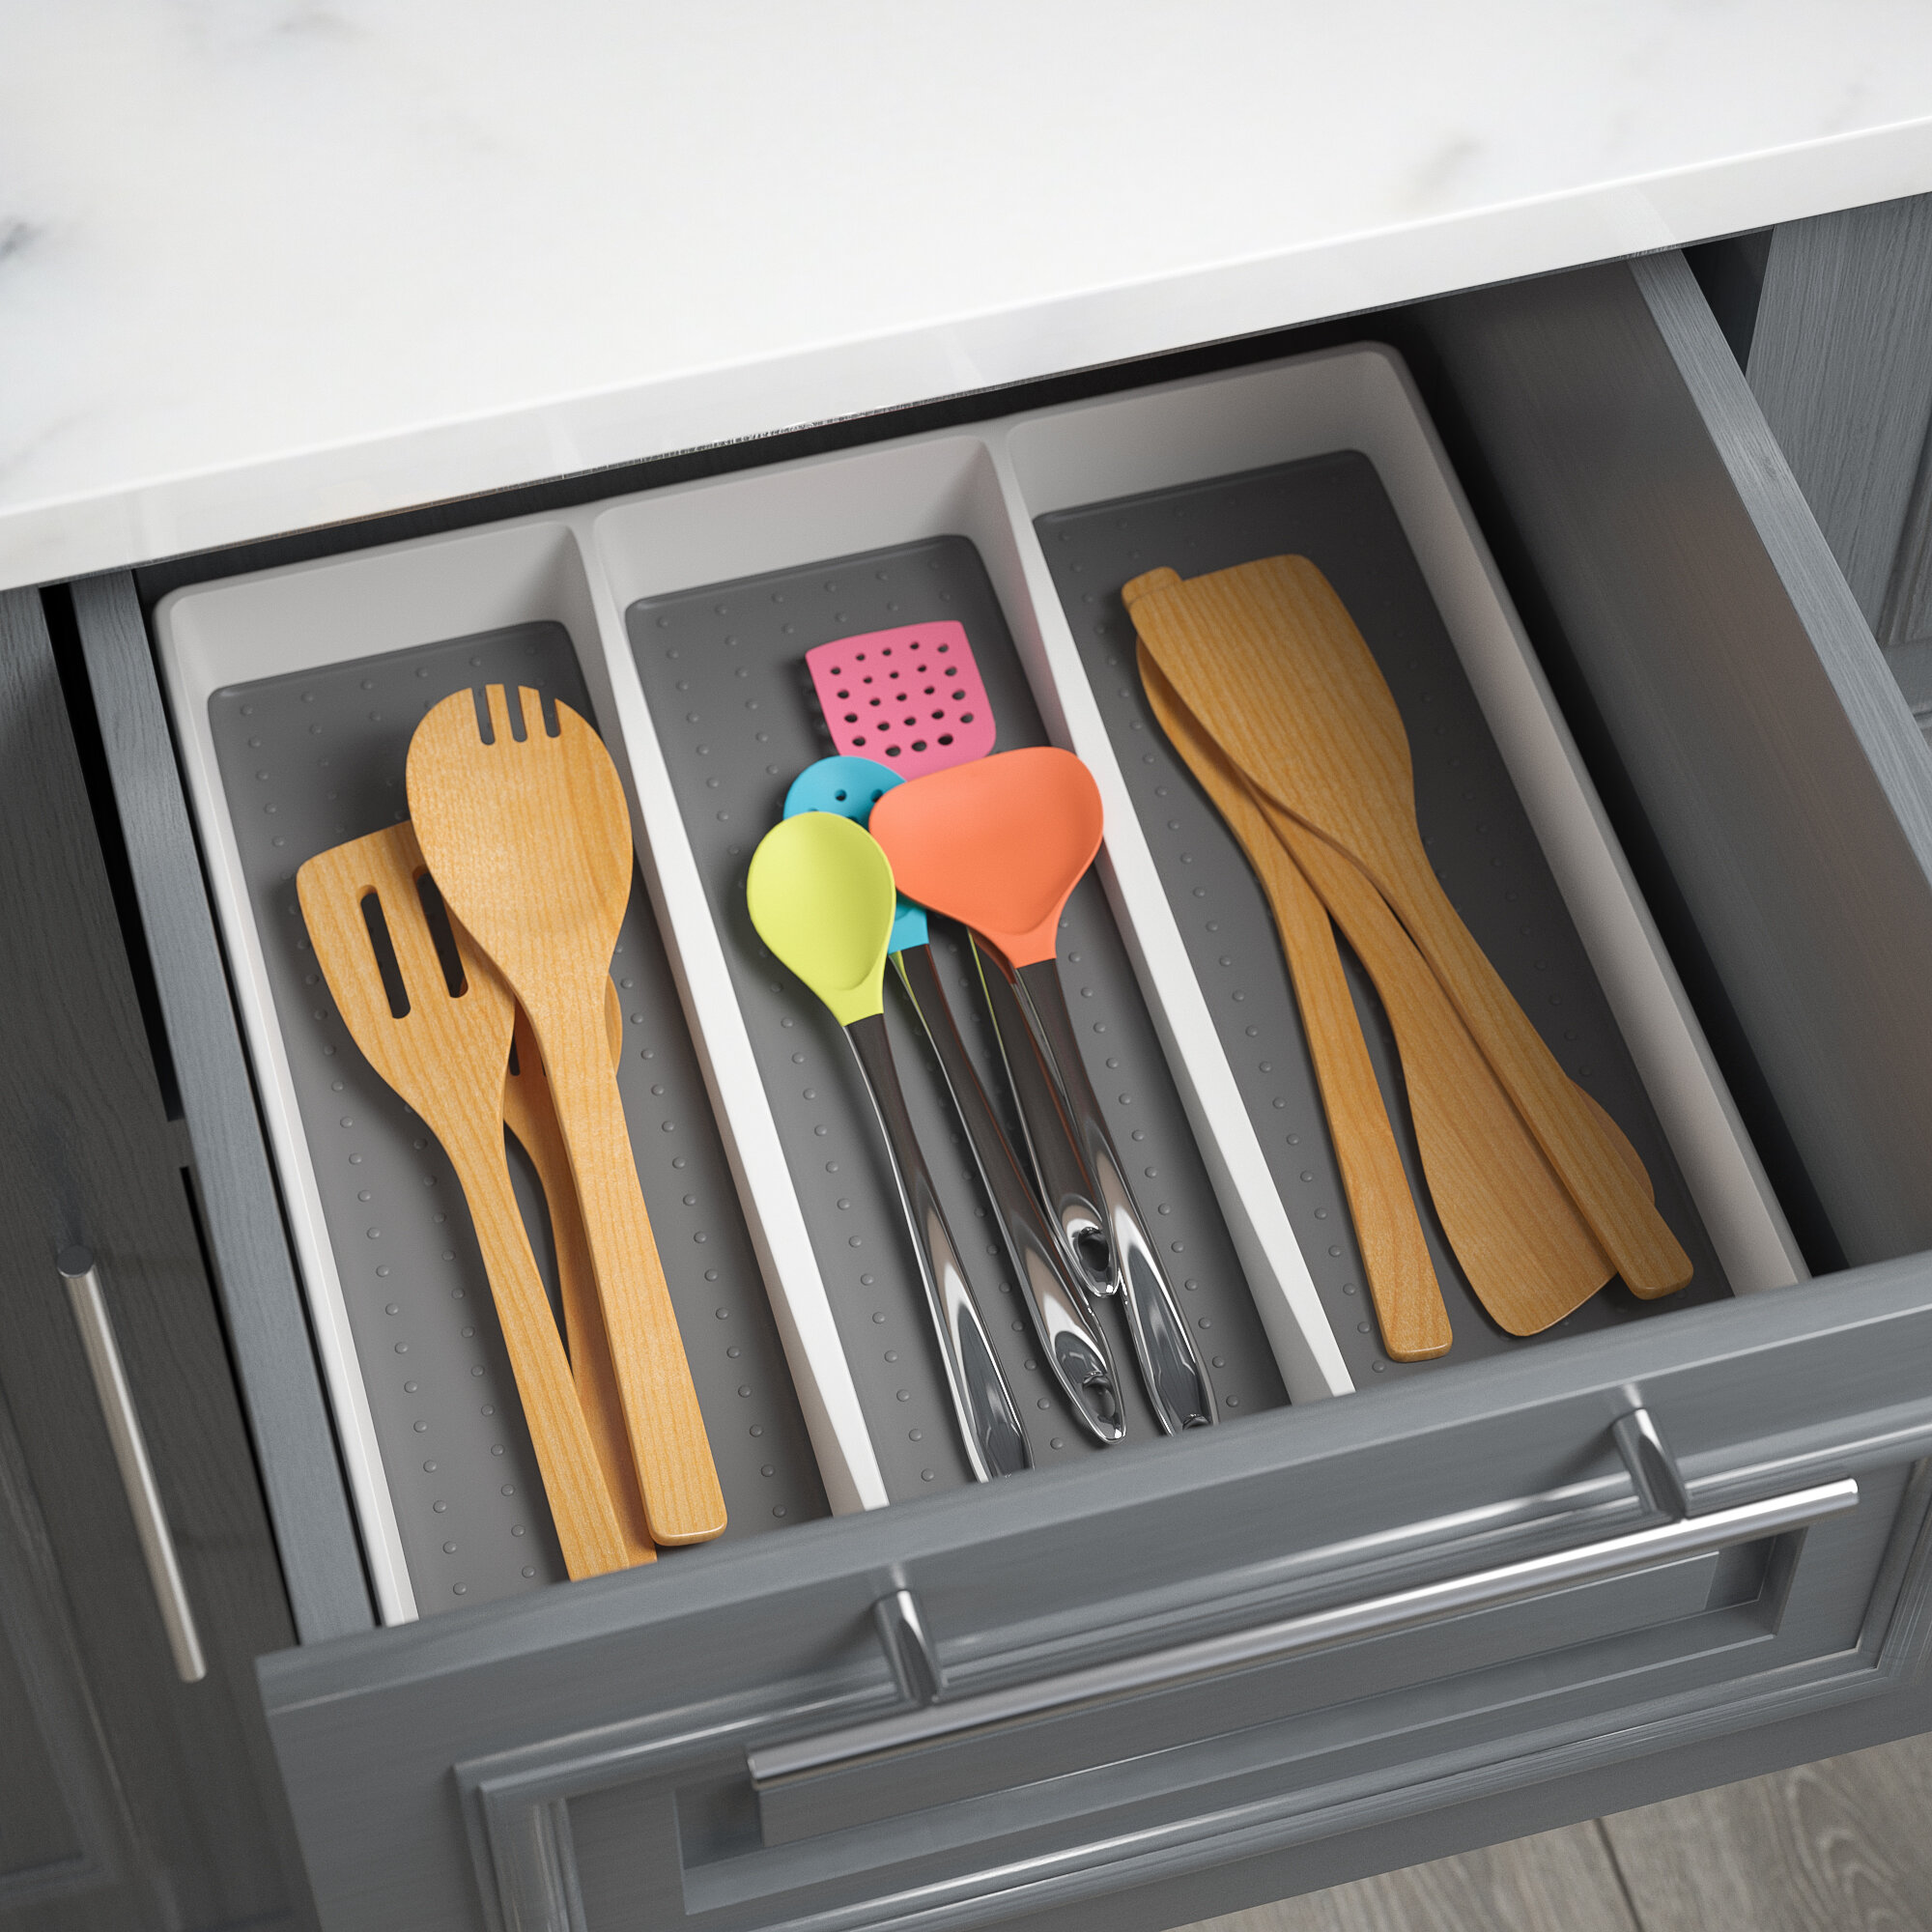 Tray for cutlery - convenience and order in the kitchen